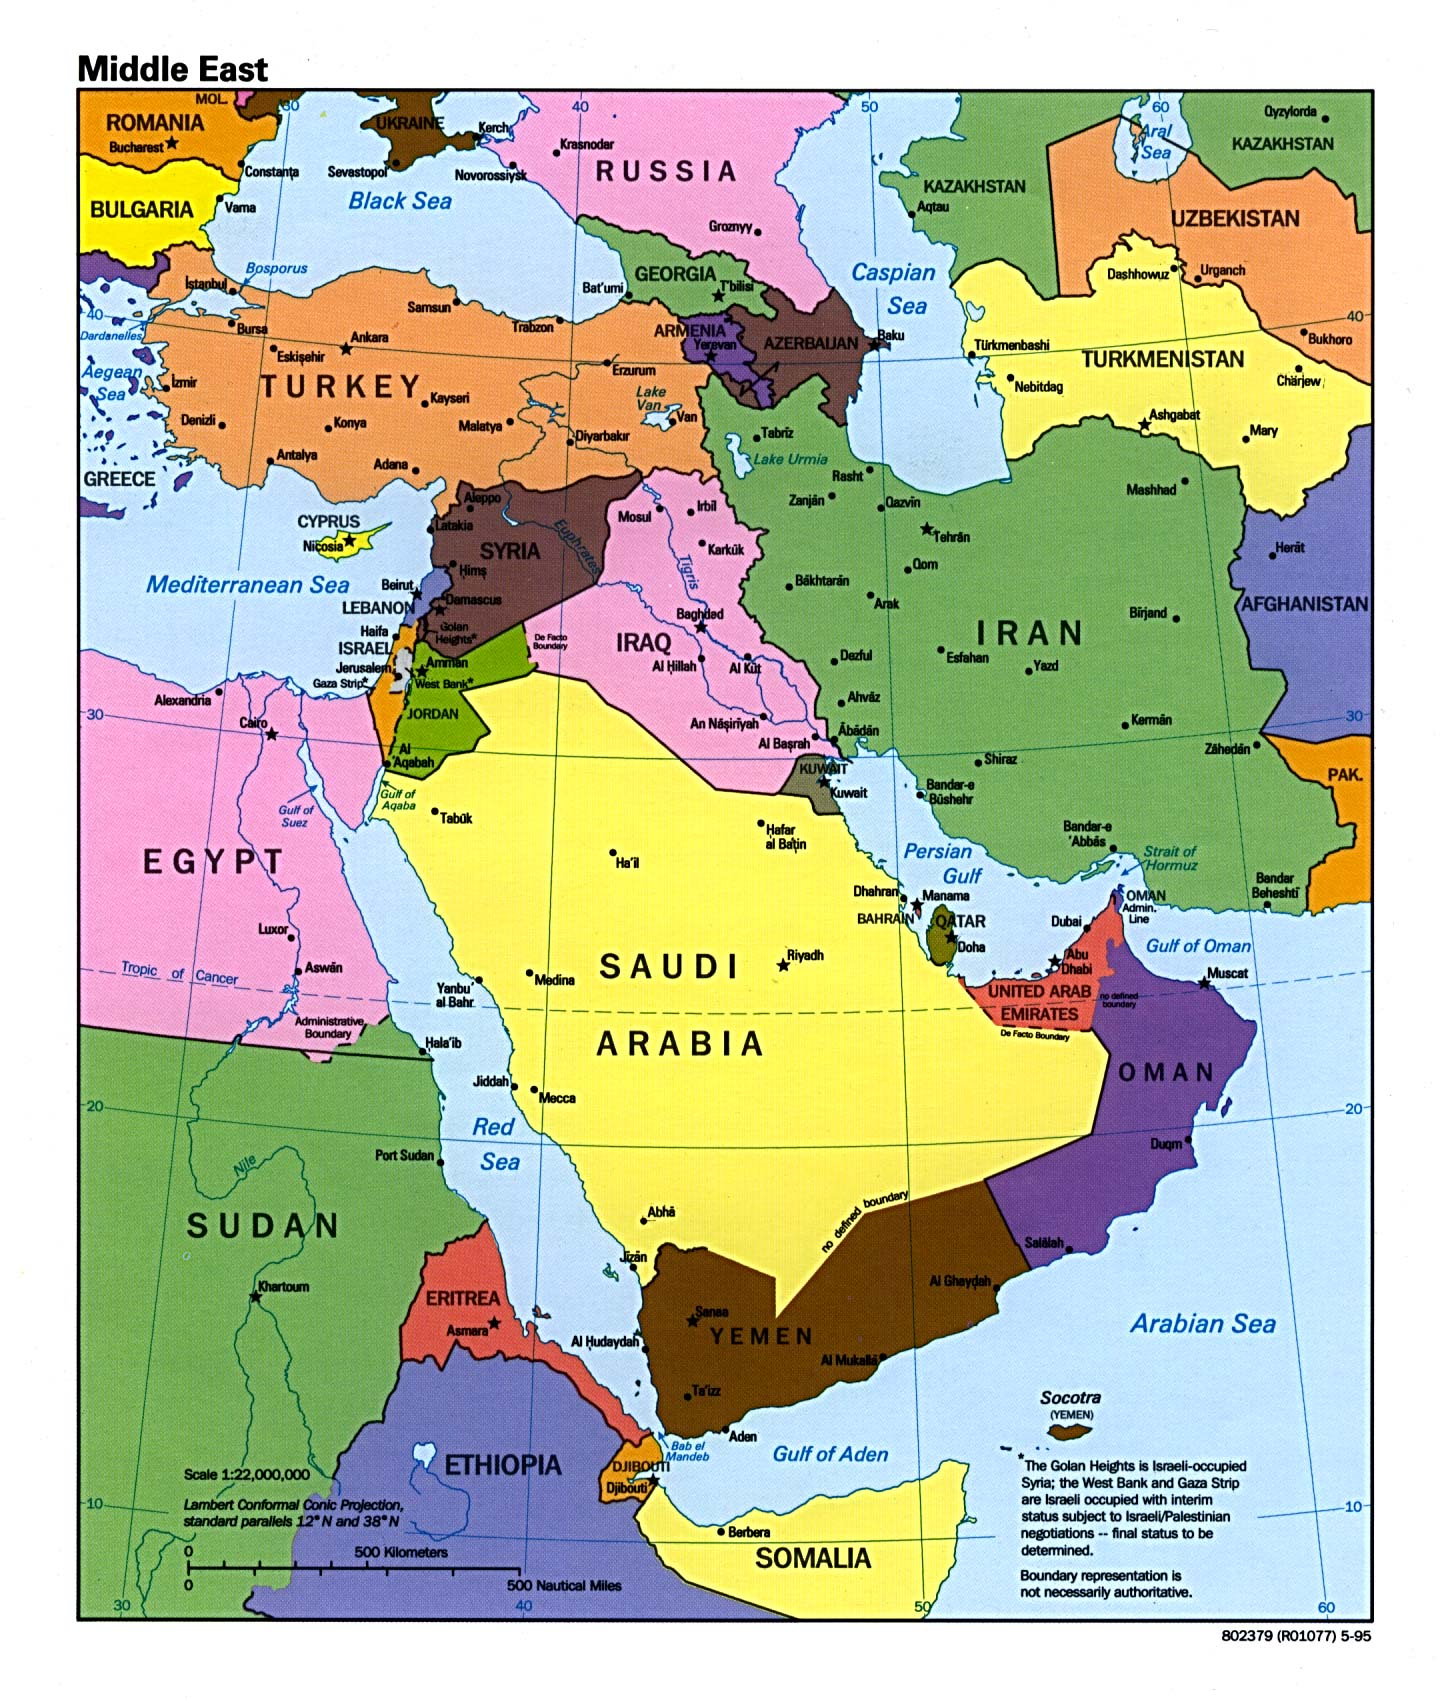 Map of Middle East Countries Involved in the War of Gog and Magog